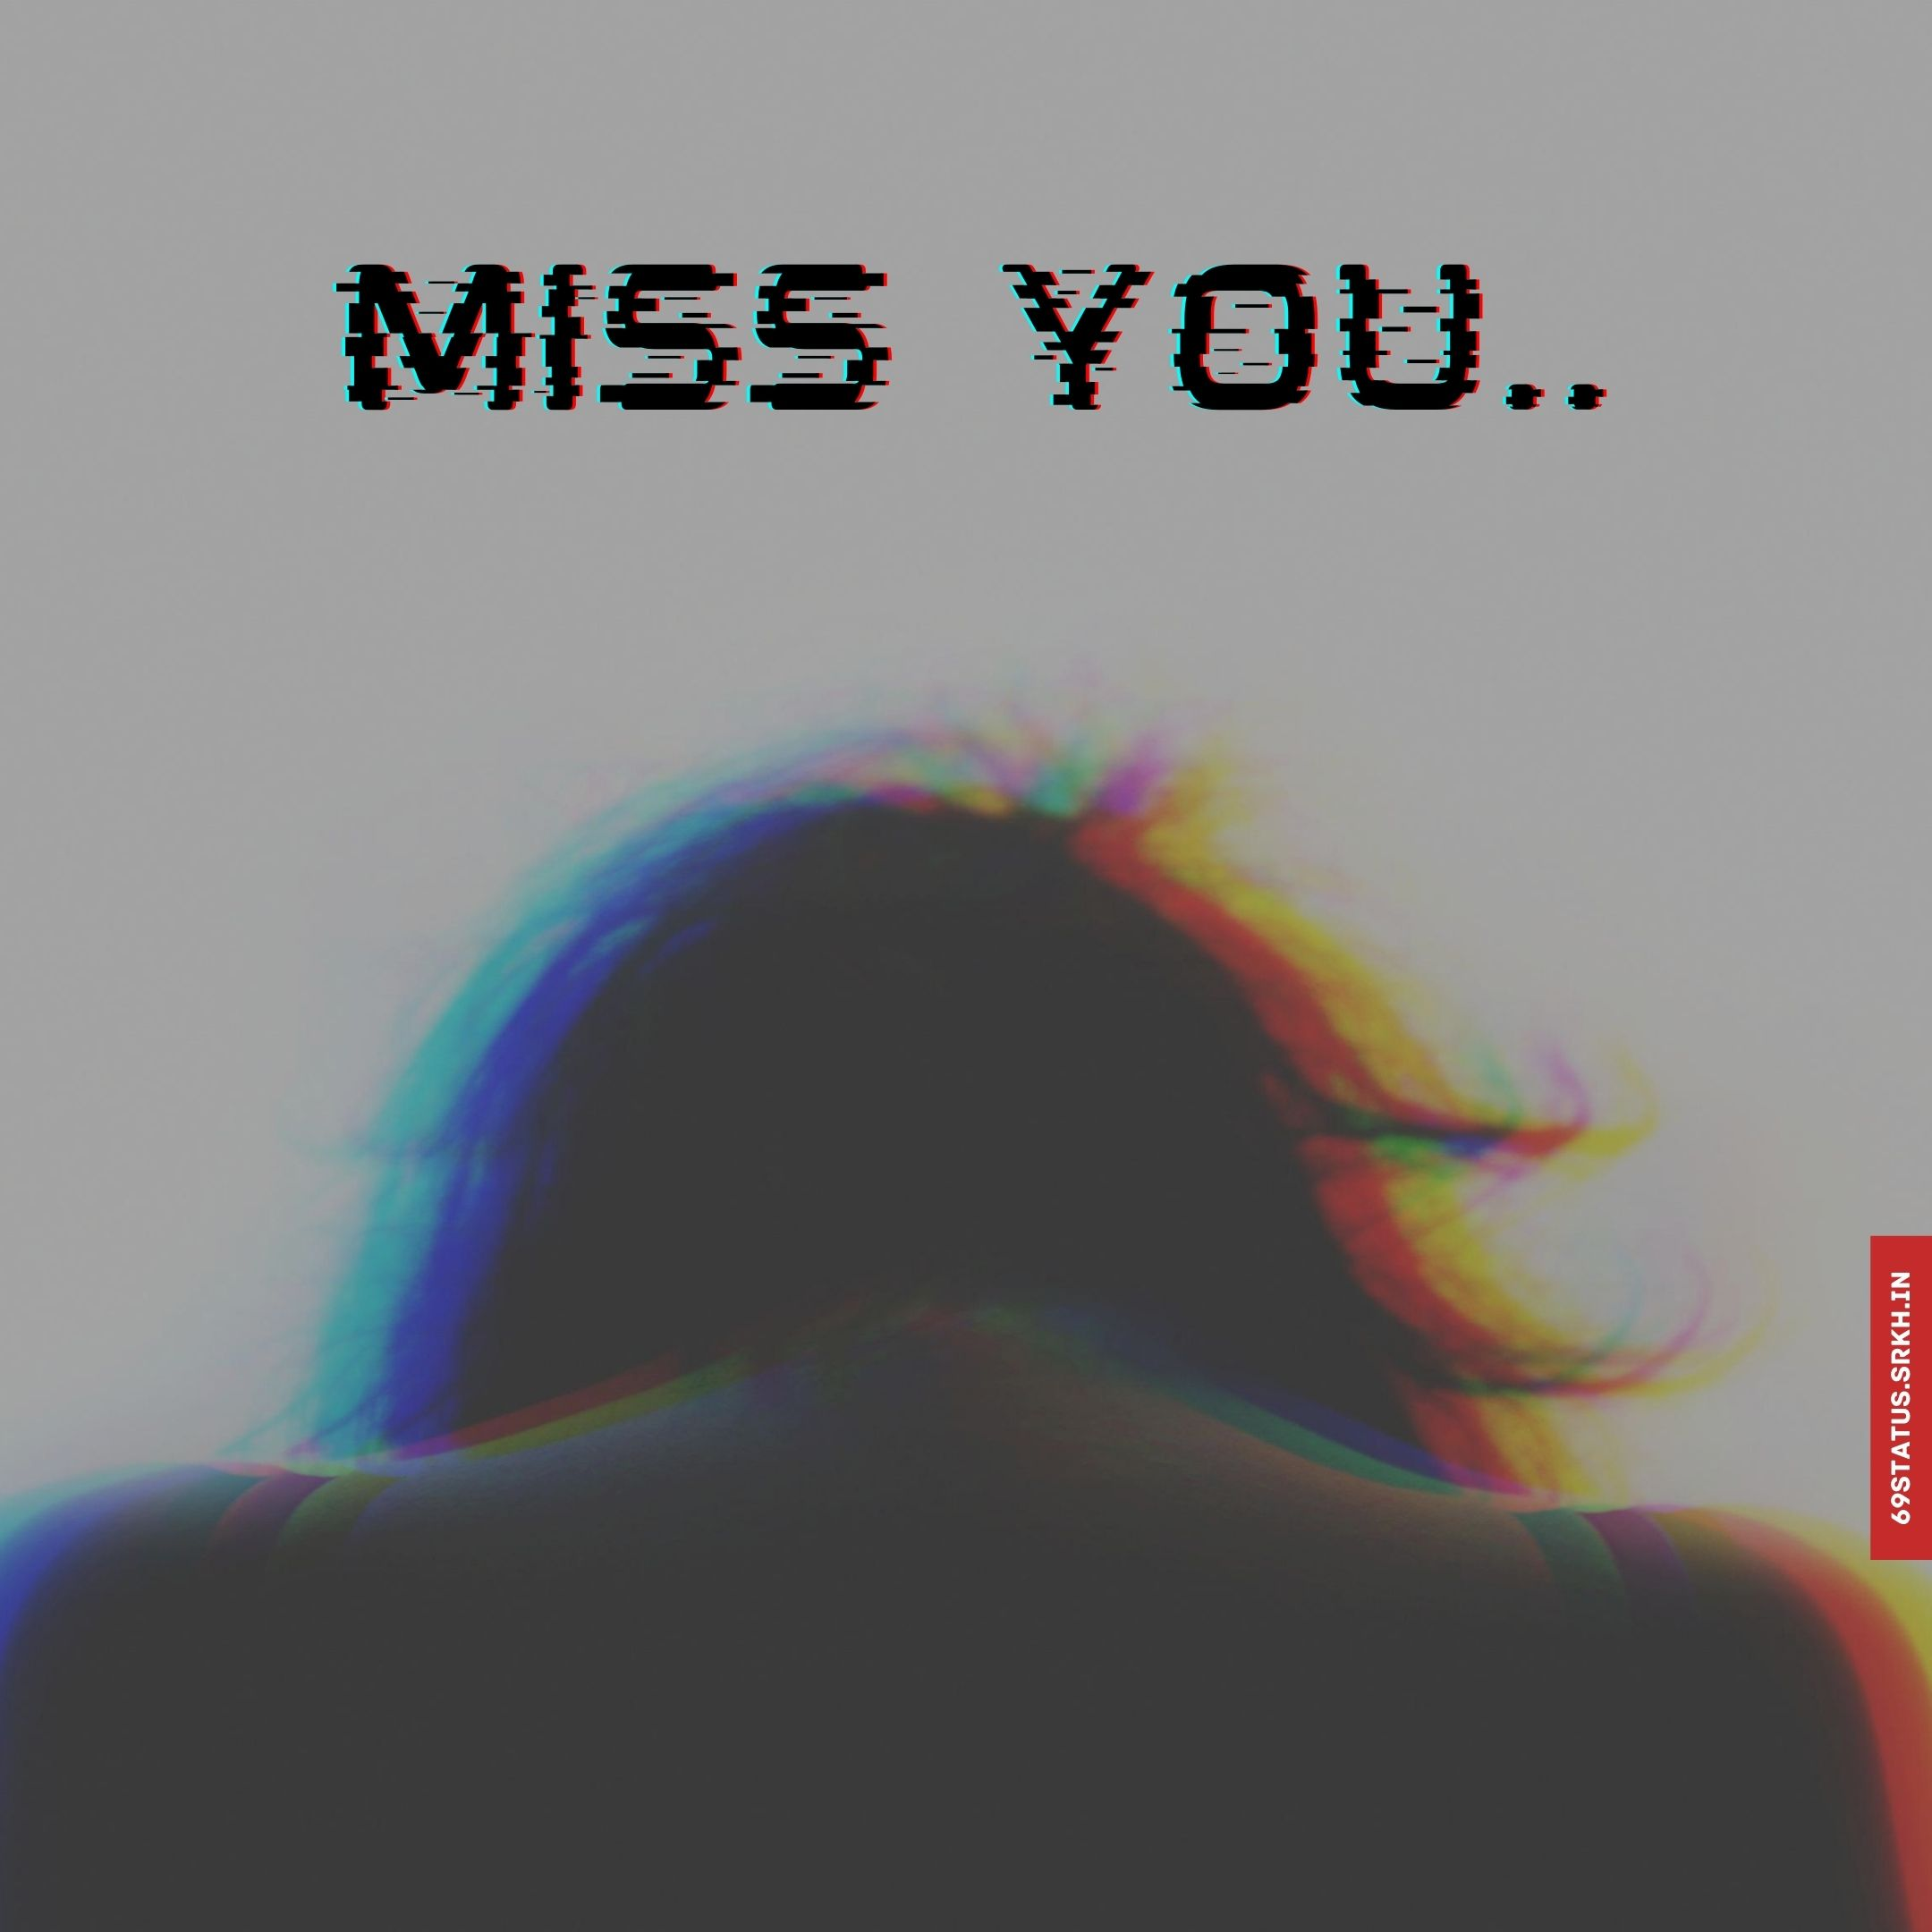 Sad miss you images full HD free download.